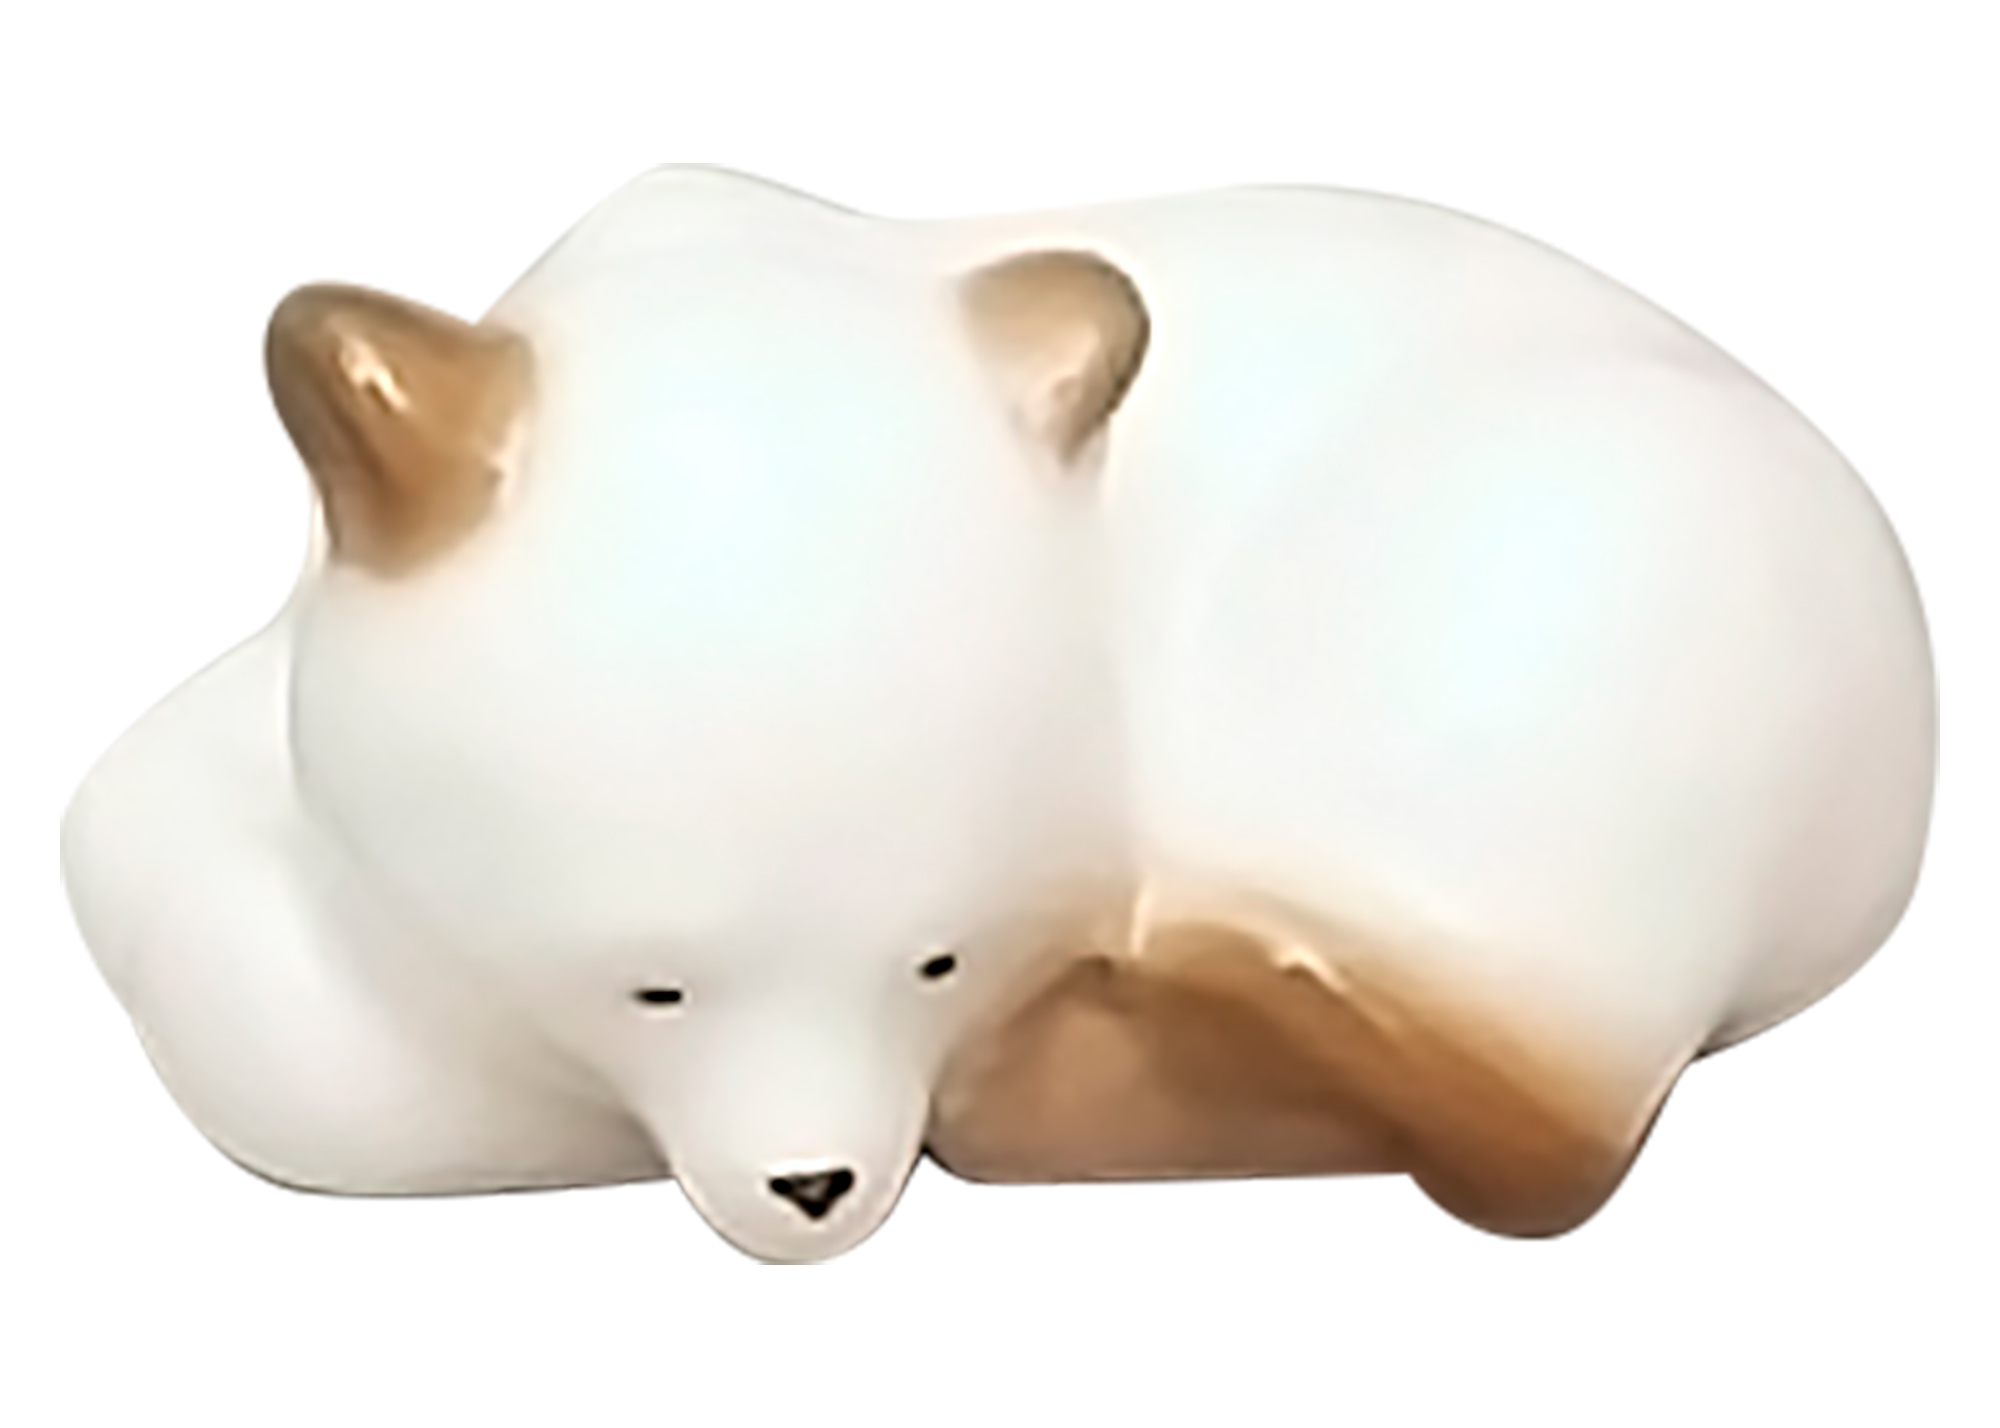 Buy Sleeping Polar Bear Cub Figurine at GoldenCockerel.com